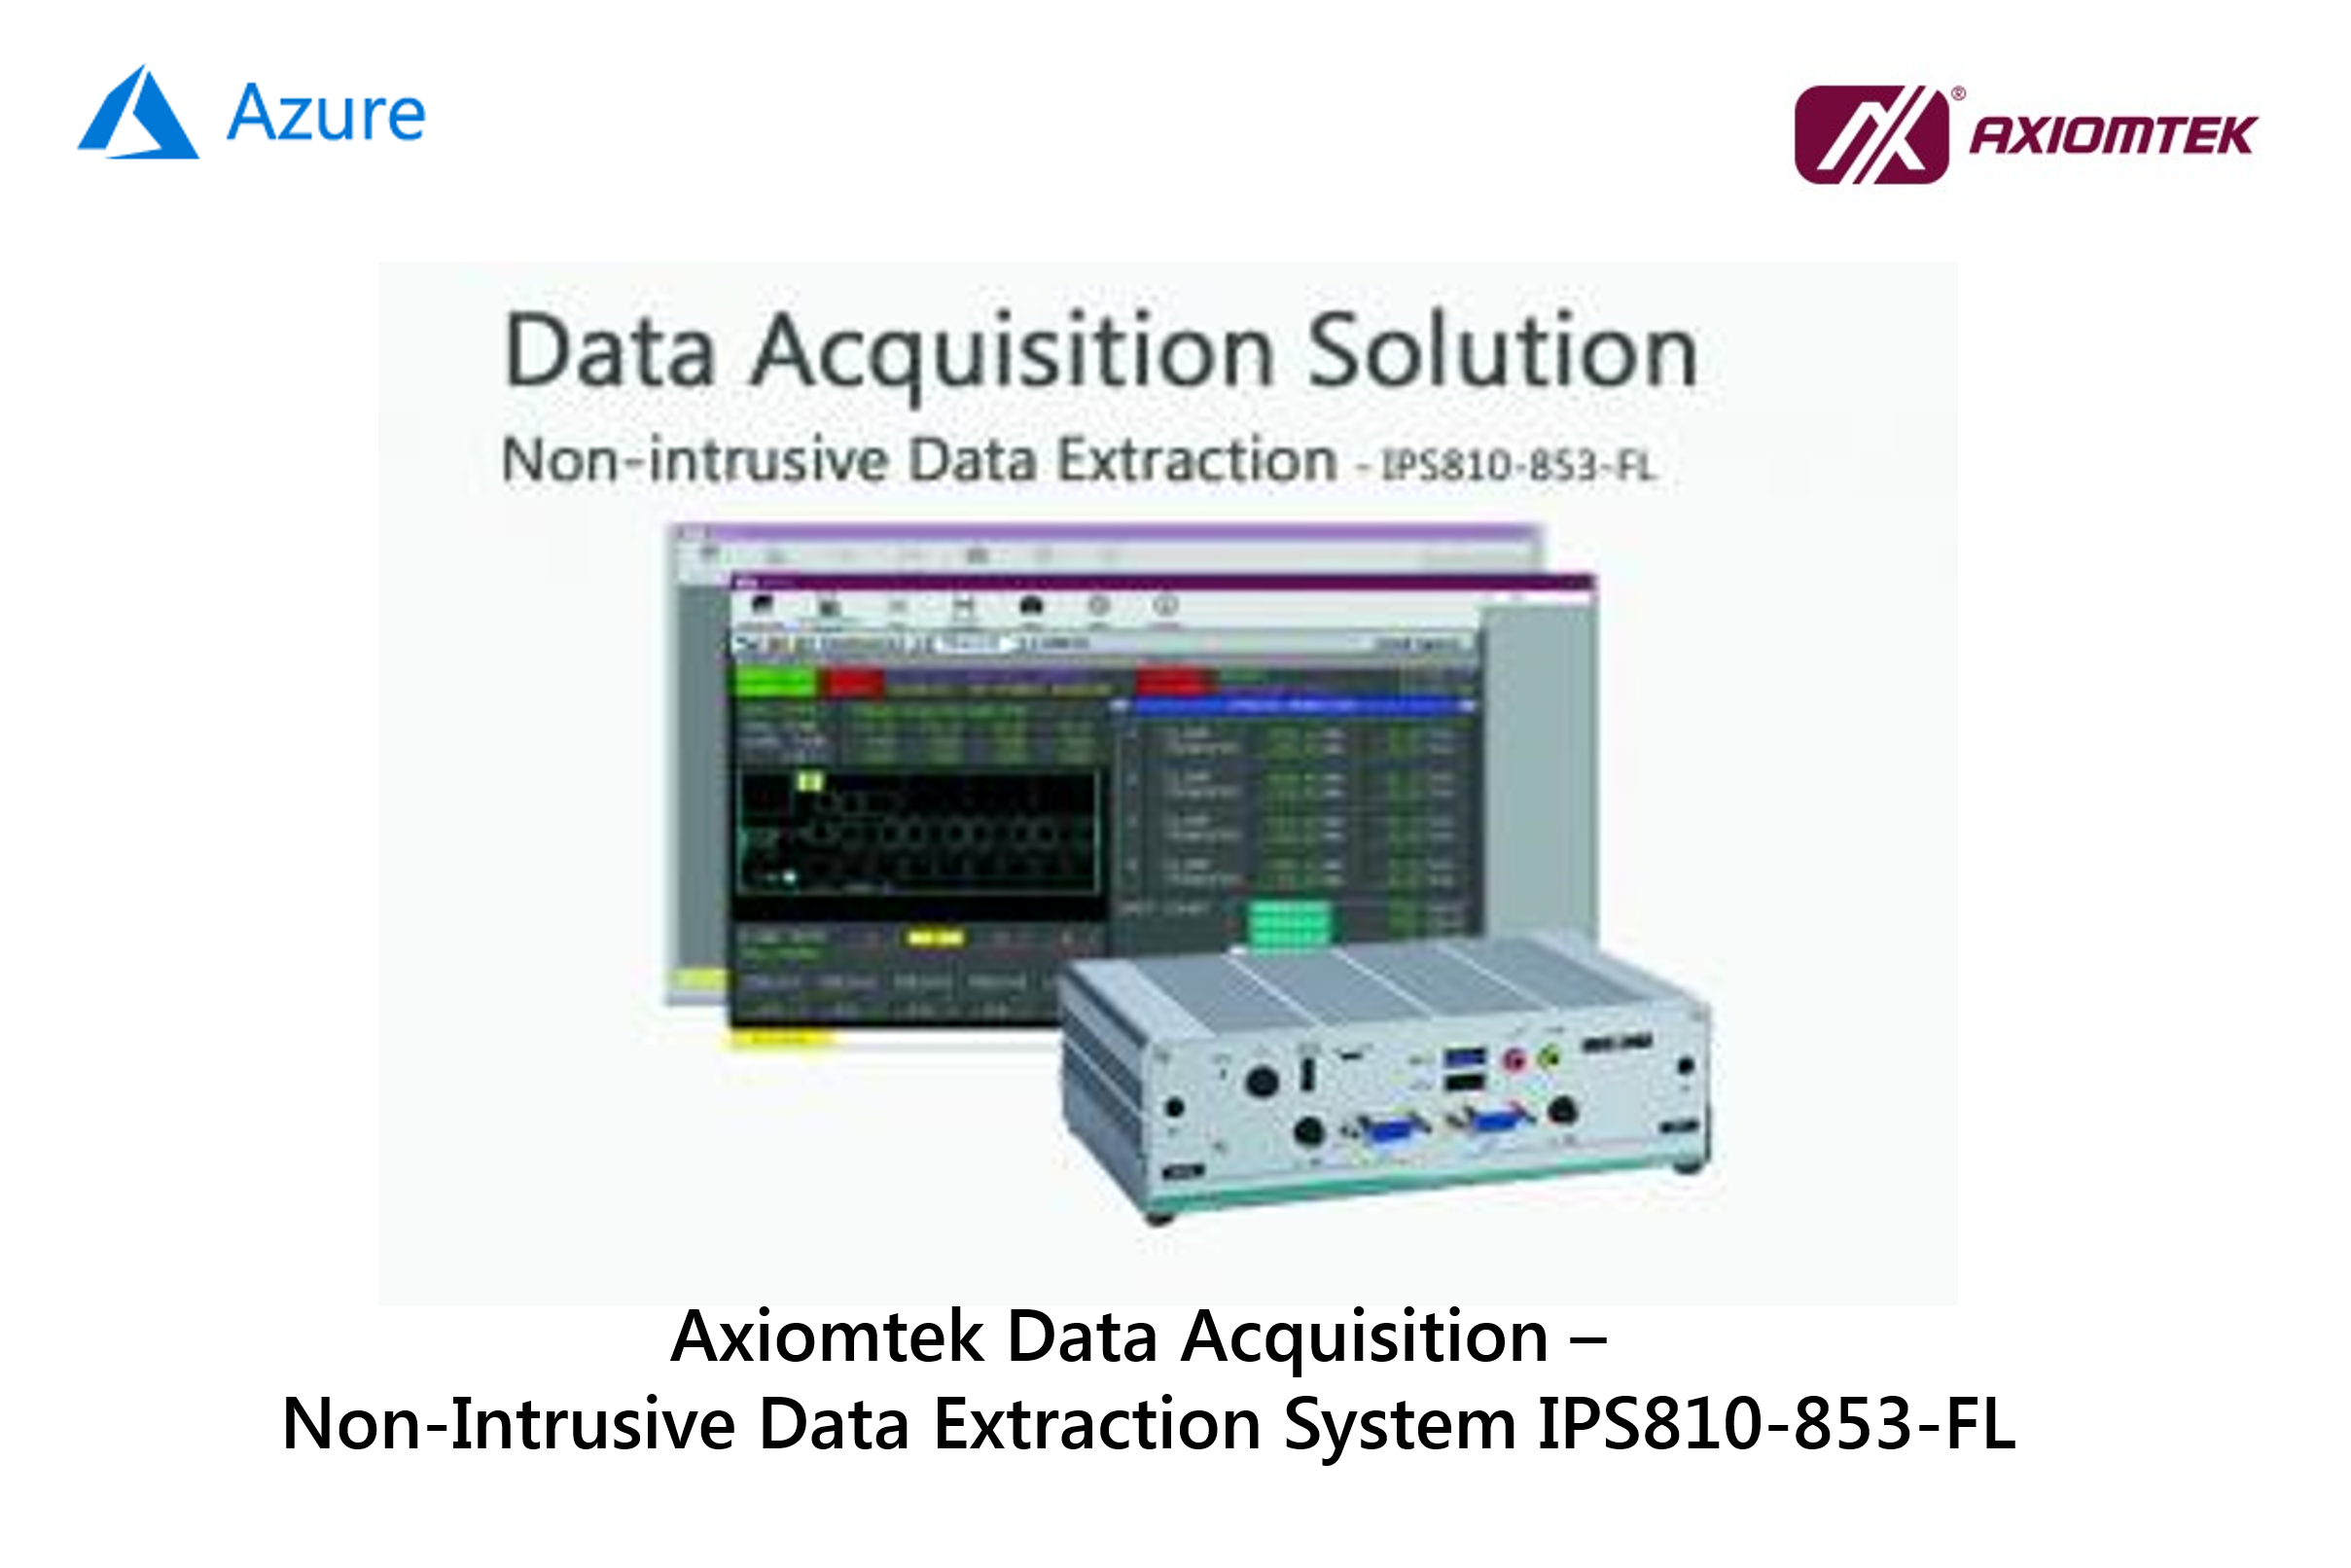 Axiomtek Non-intrusive data extractor